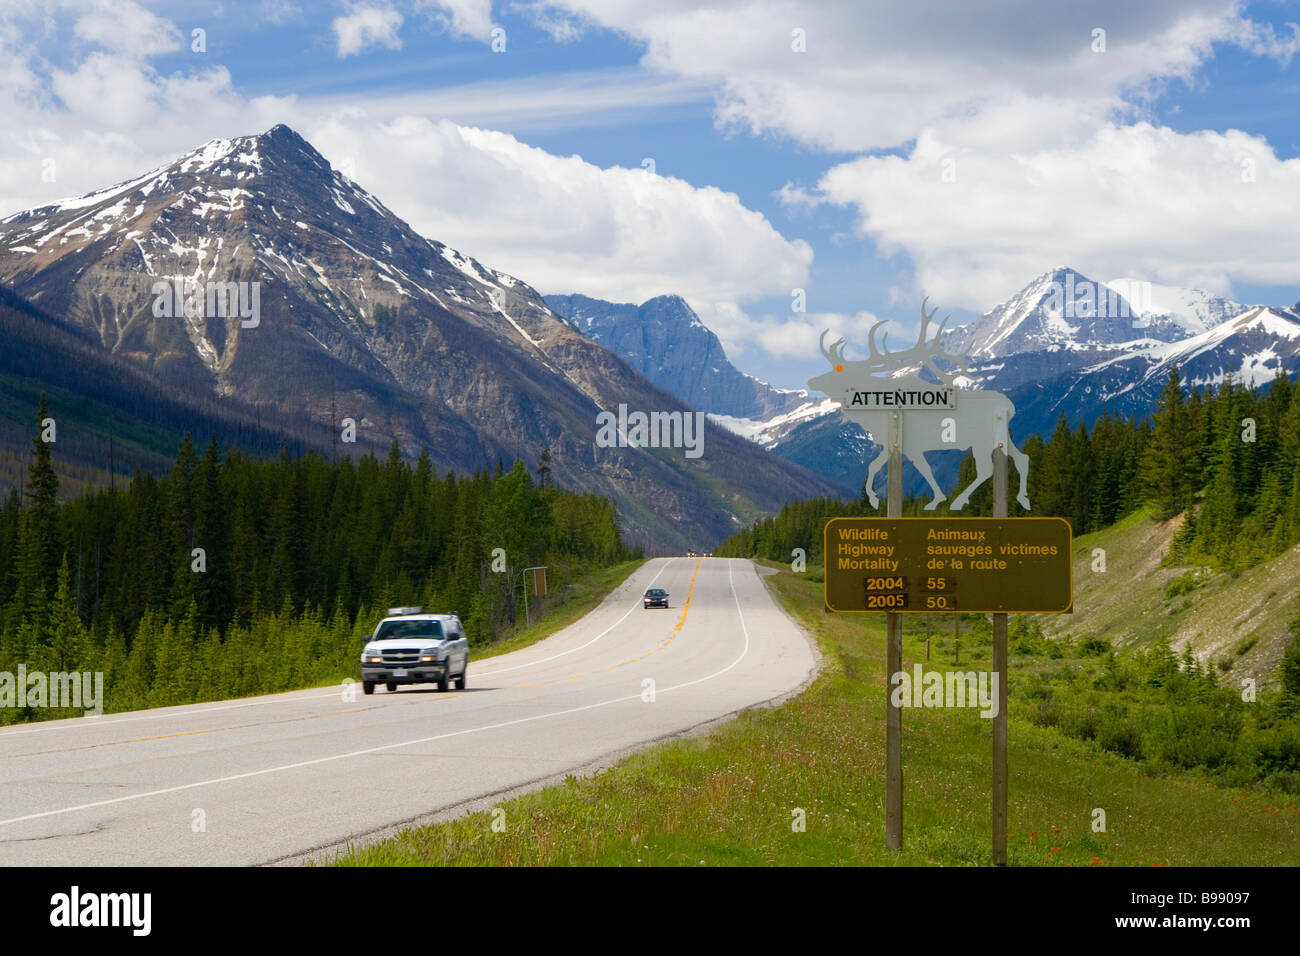 Road & beware of animals crossing sign Yoho National Park, British Colombia, Canada - Stock Image